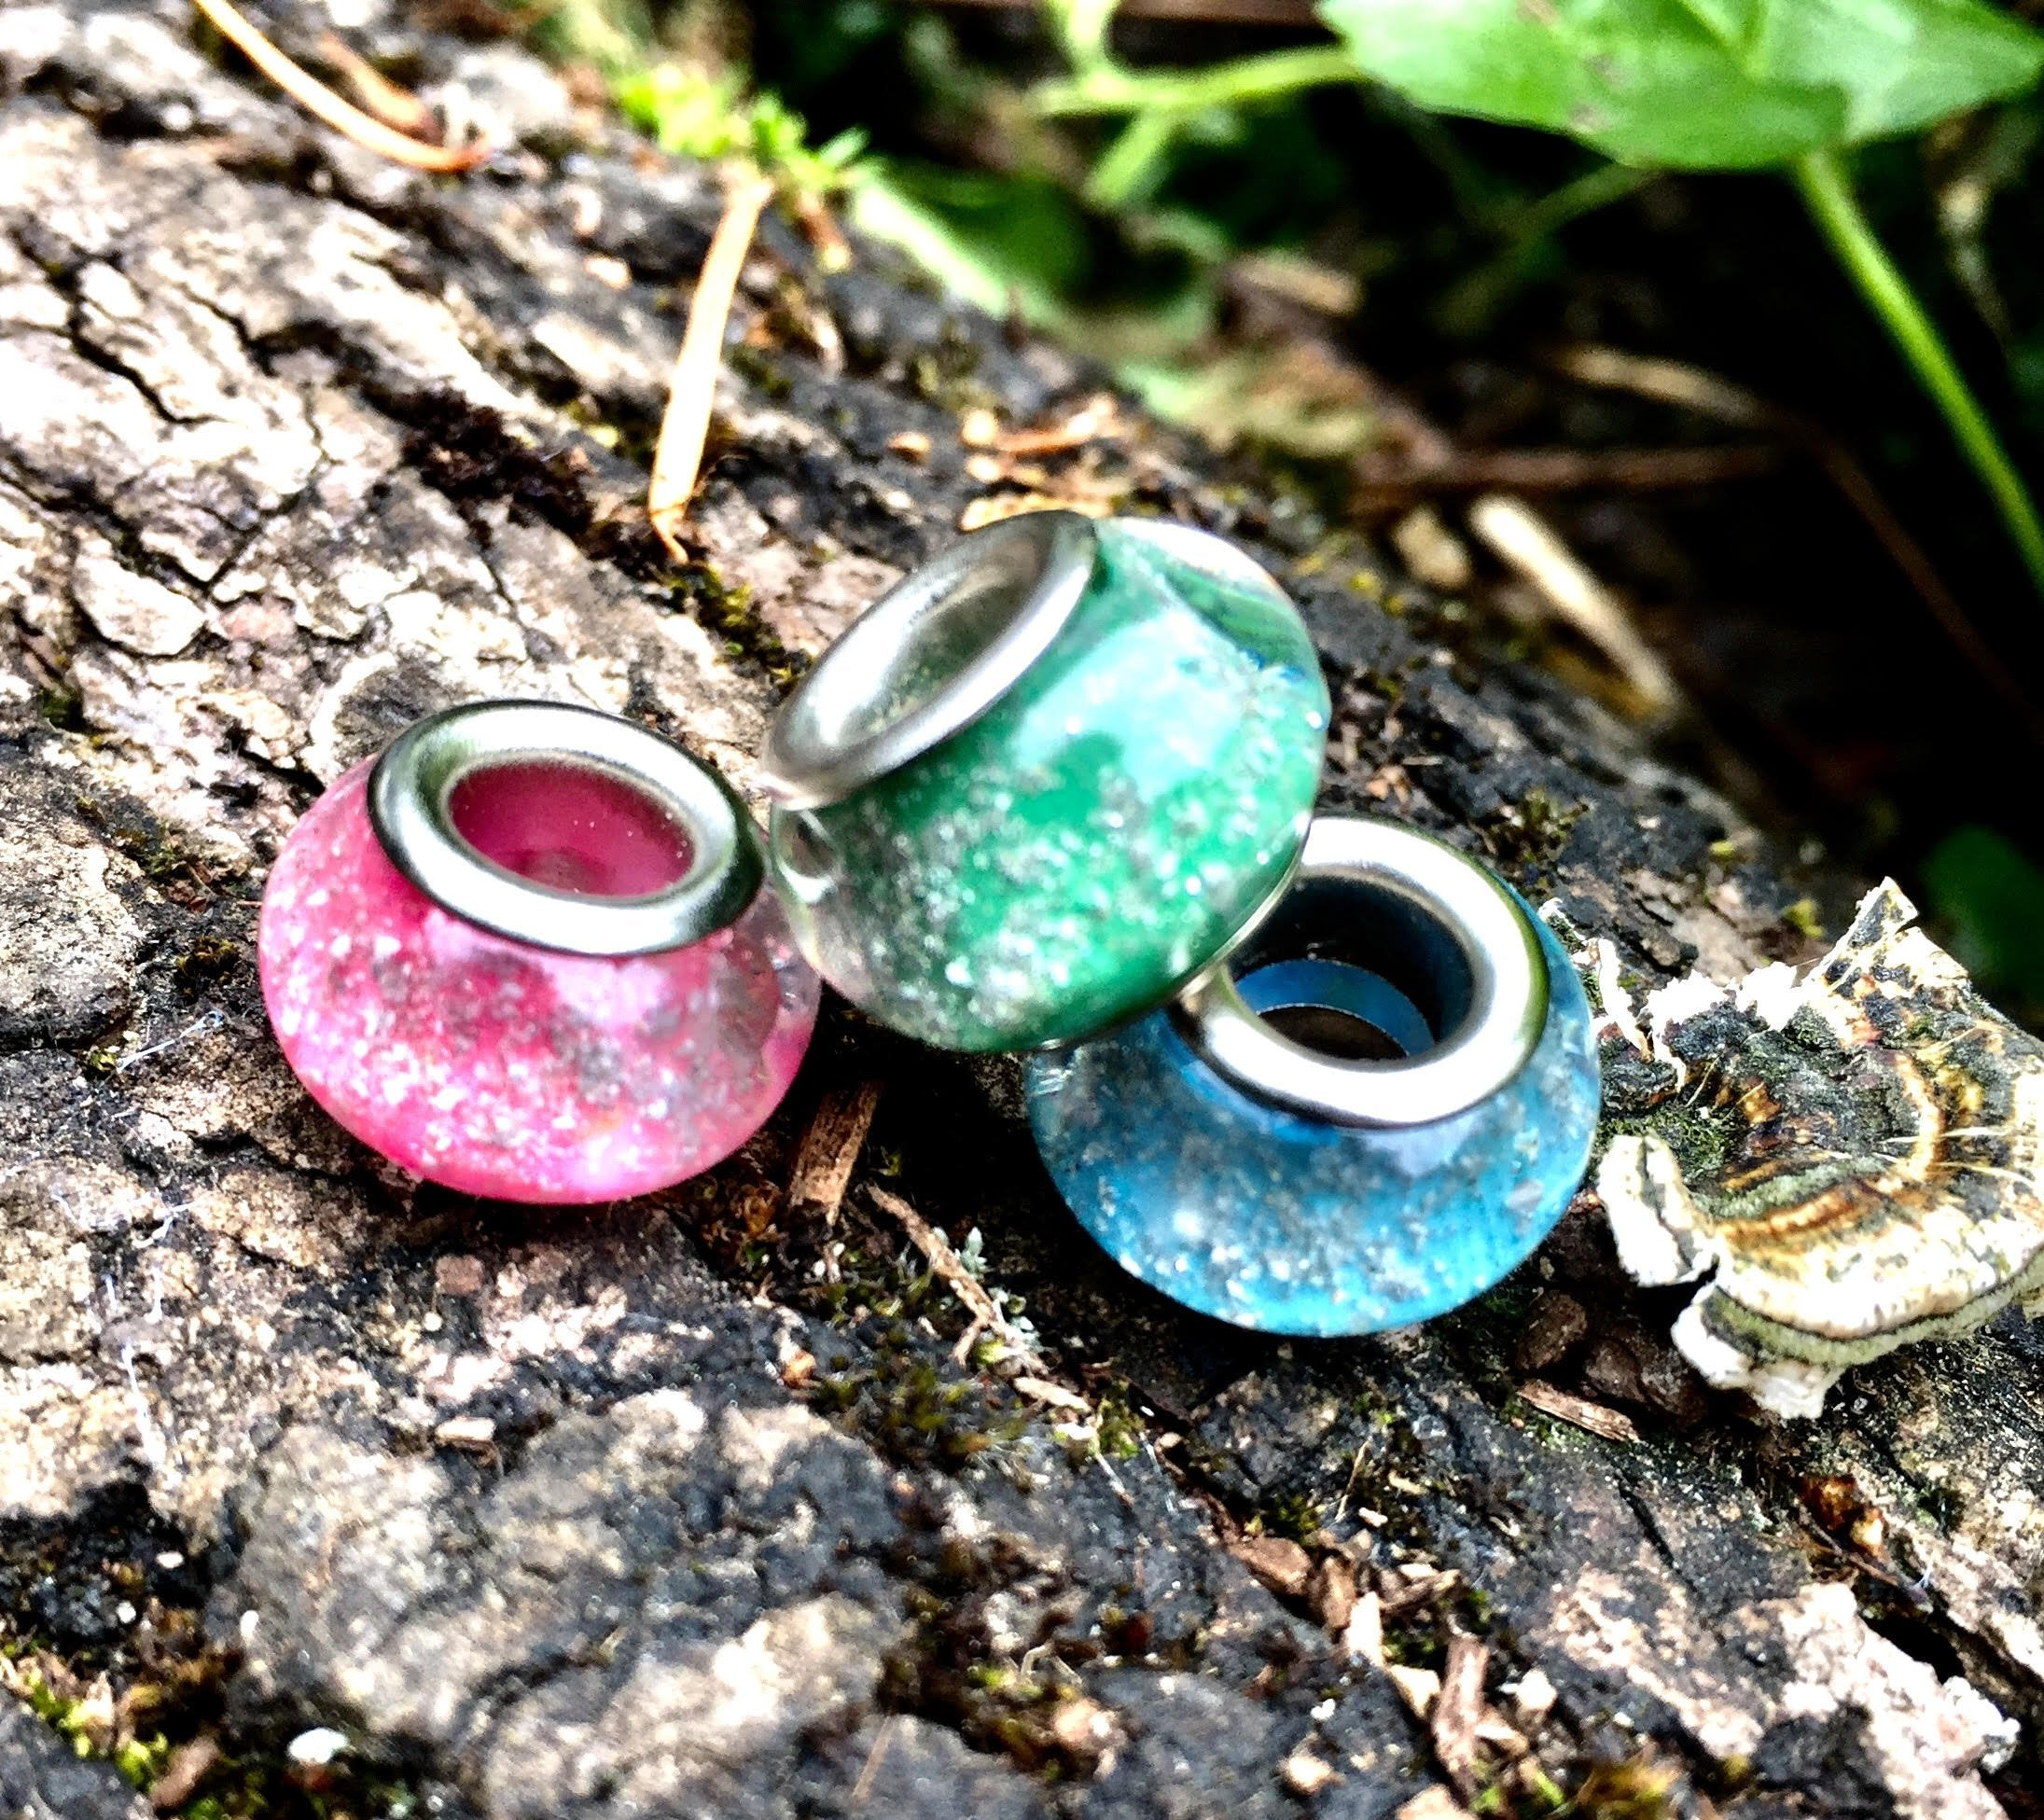 fbcccd15b Solid Color Pandora Beads with Cremains by Oksana $59.00 | Spirit ...